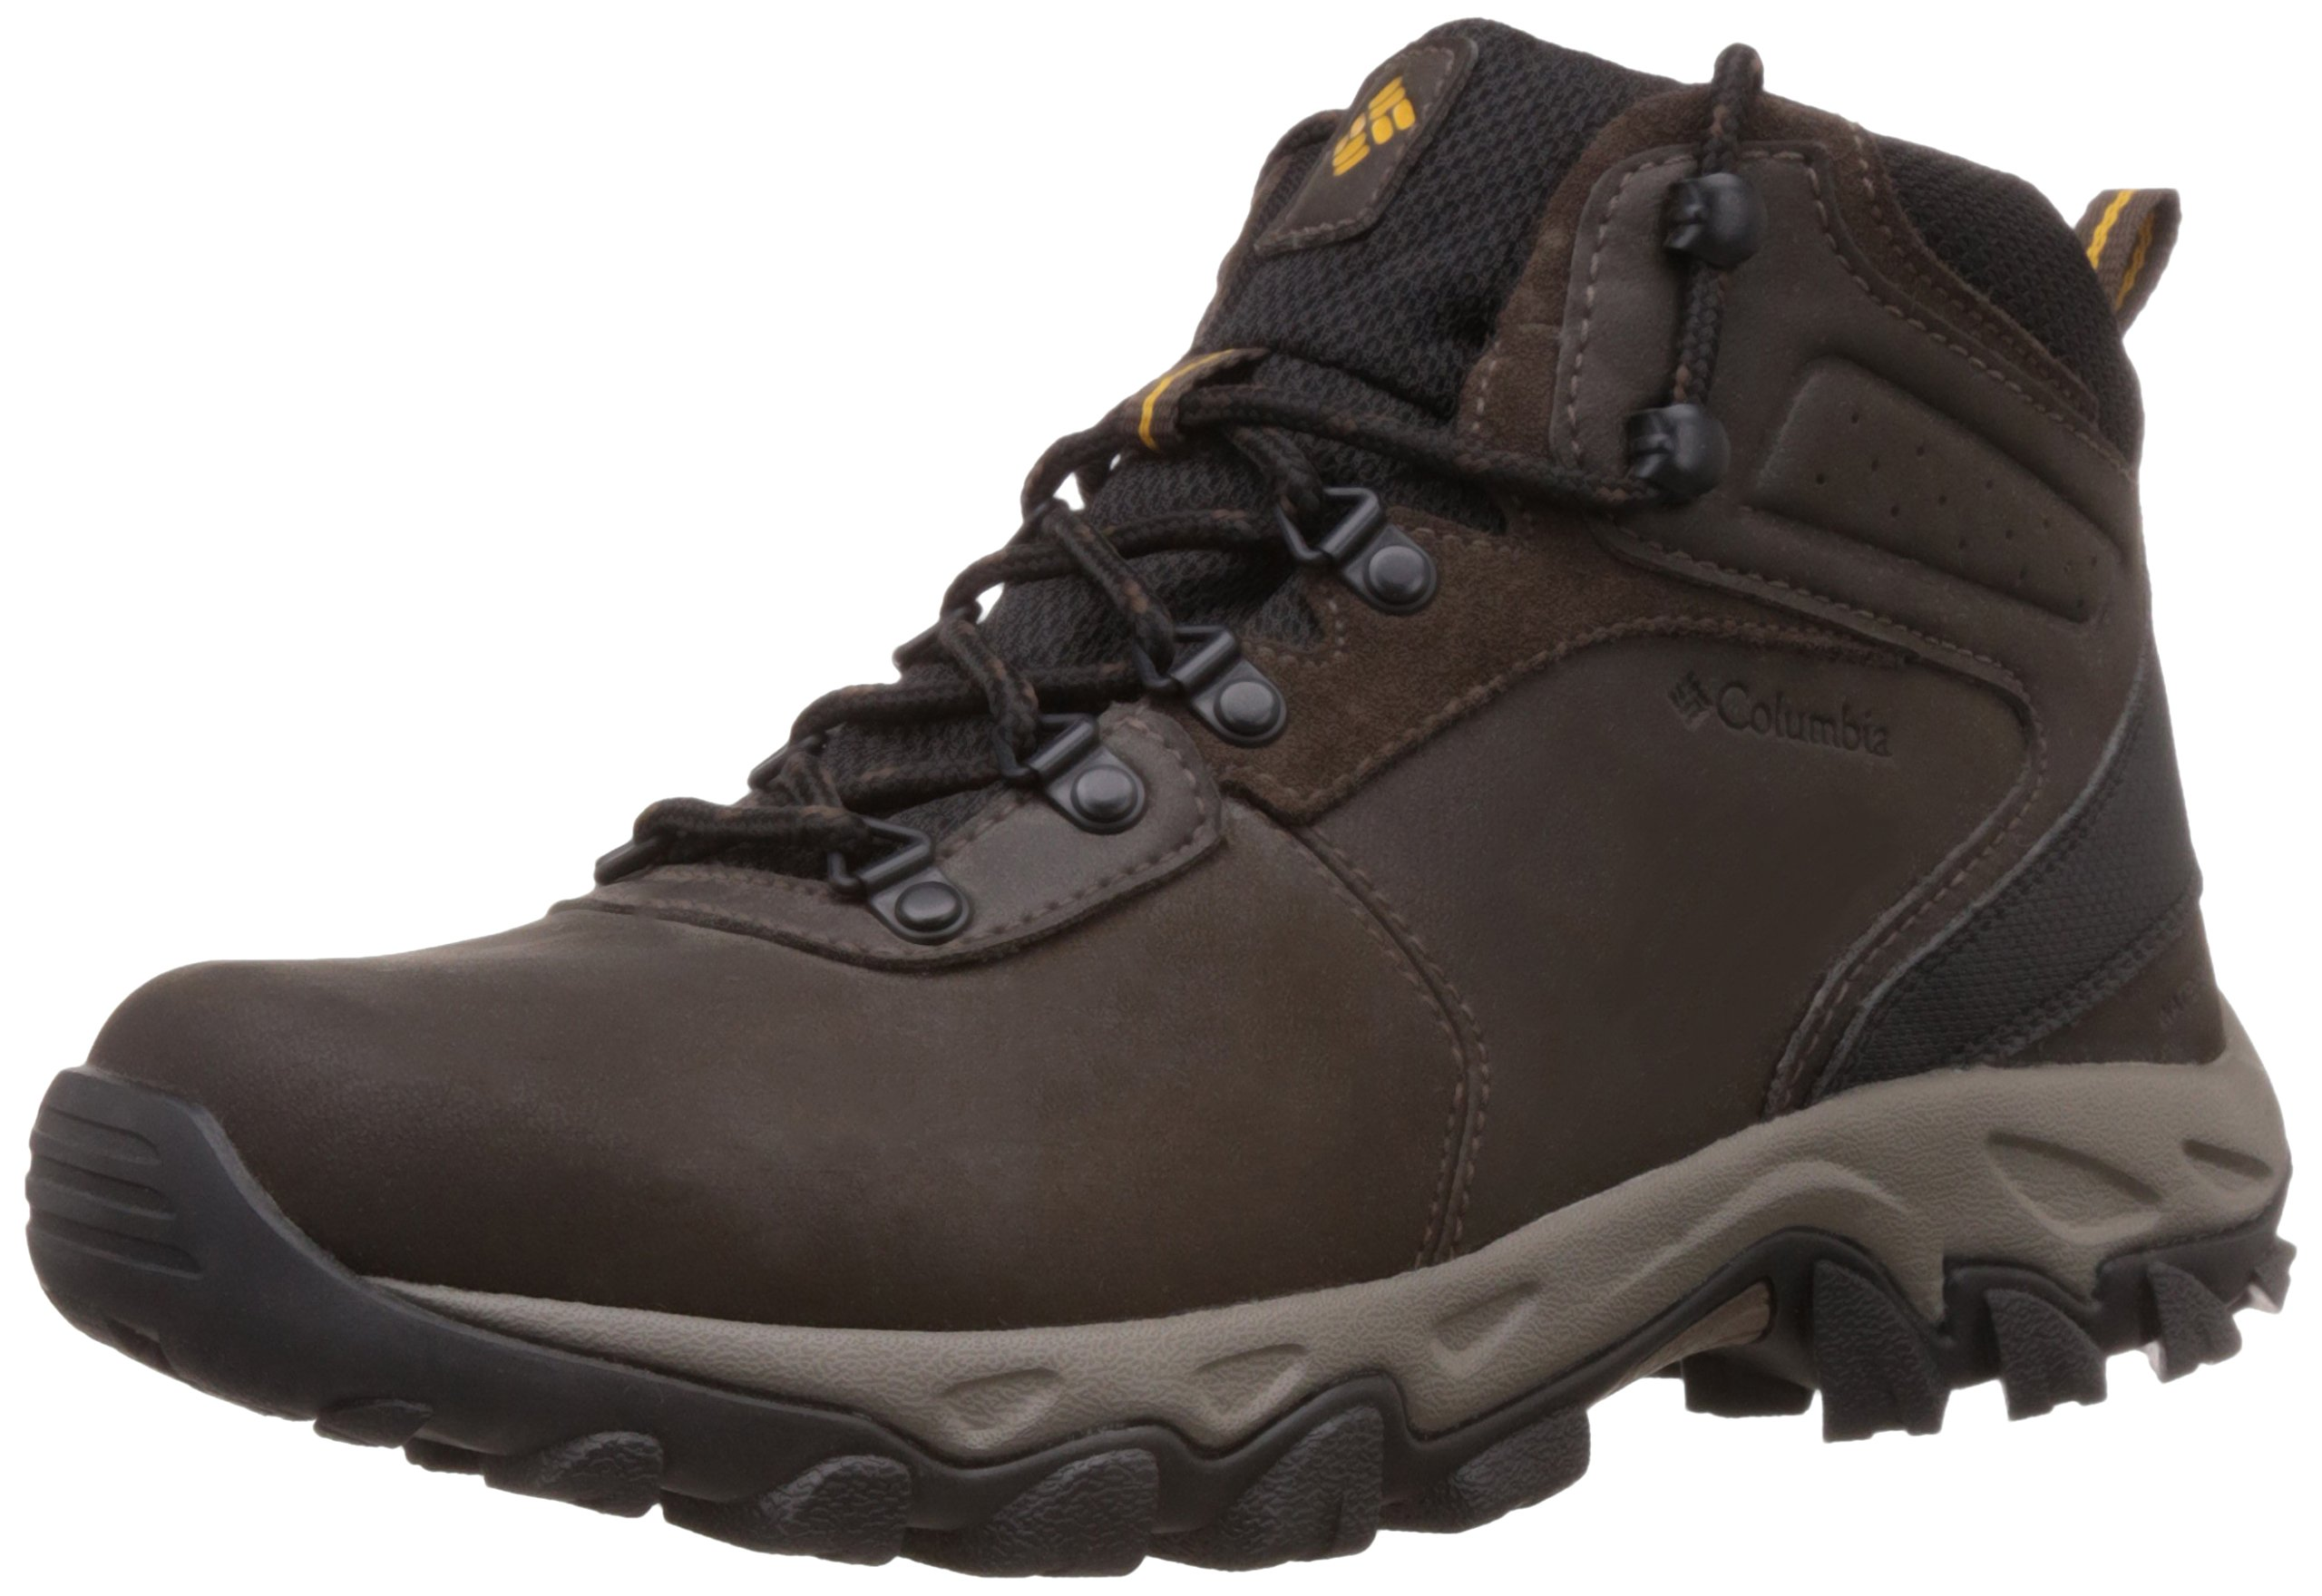 Columbia Men's Newton Ridge Plus II Waterproof Hiking Boot, Cordovan/Squash, 10.5 D US by Columbia